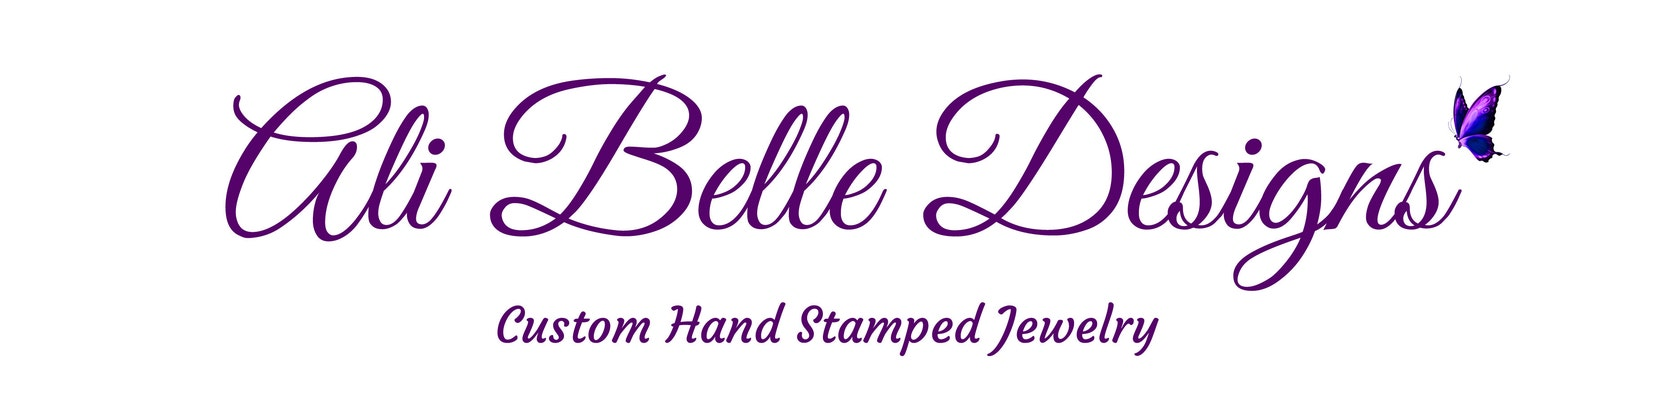 how to make hand stamped jewelry supplies